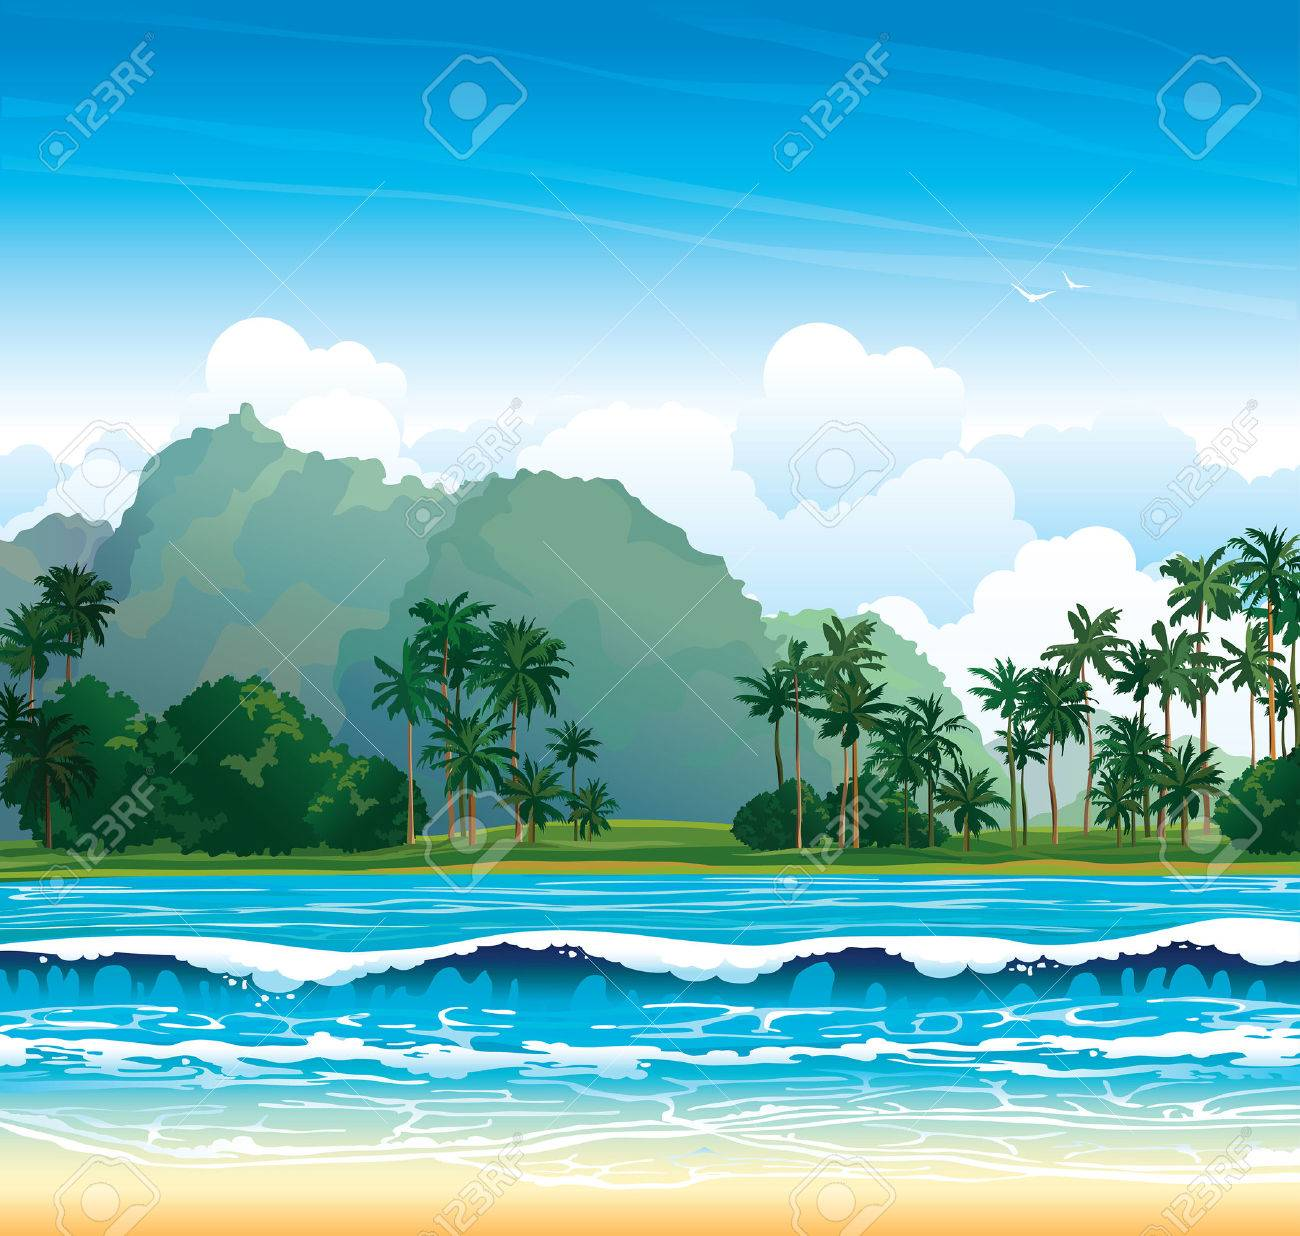 Tropical landscape with blue sea, waves and palms on a cloudy sky. - 28076322